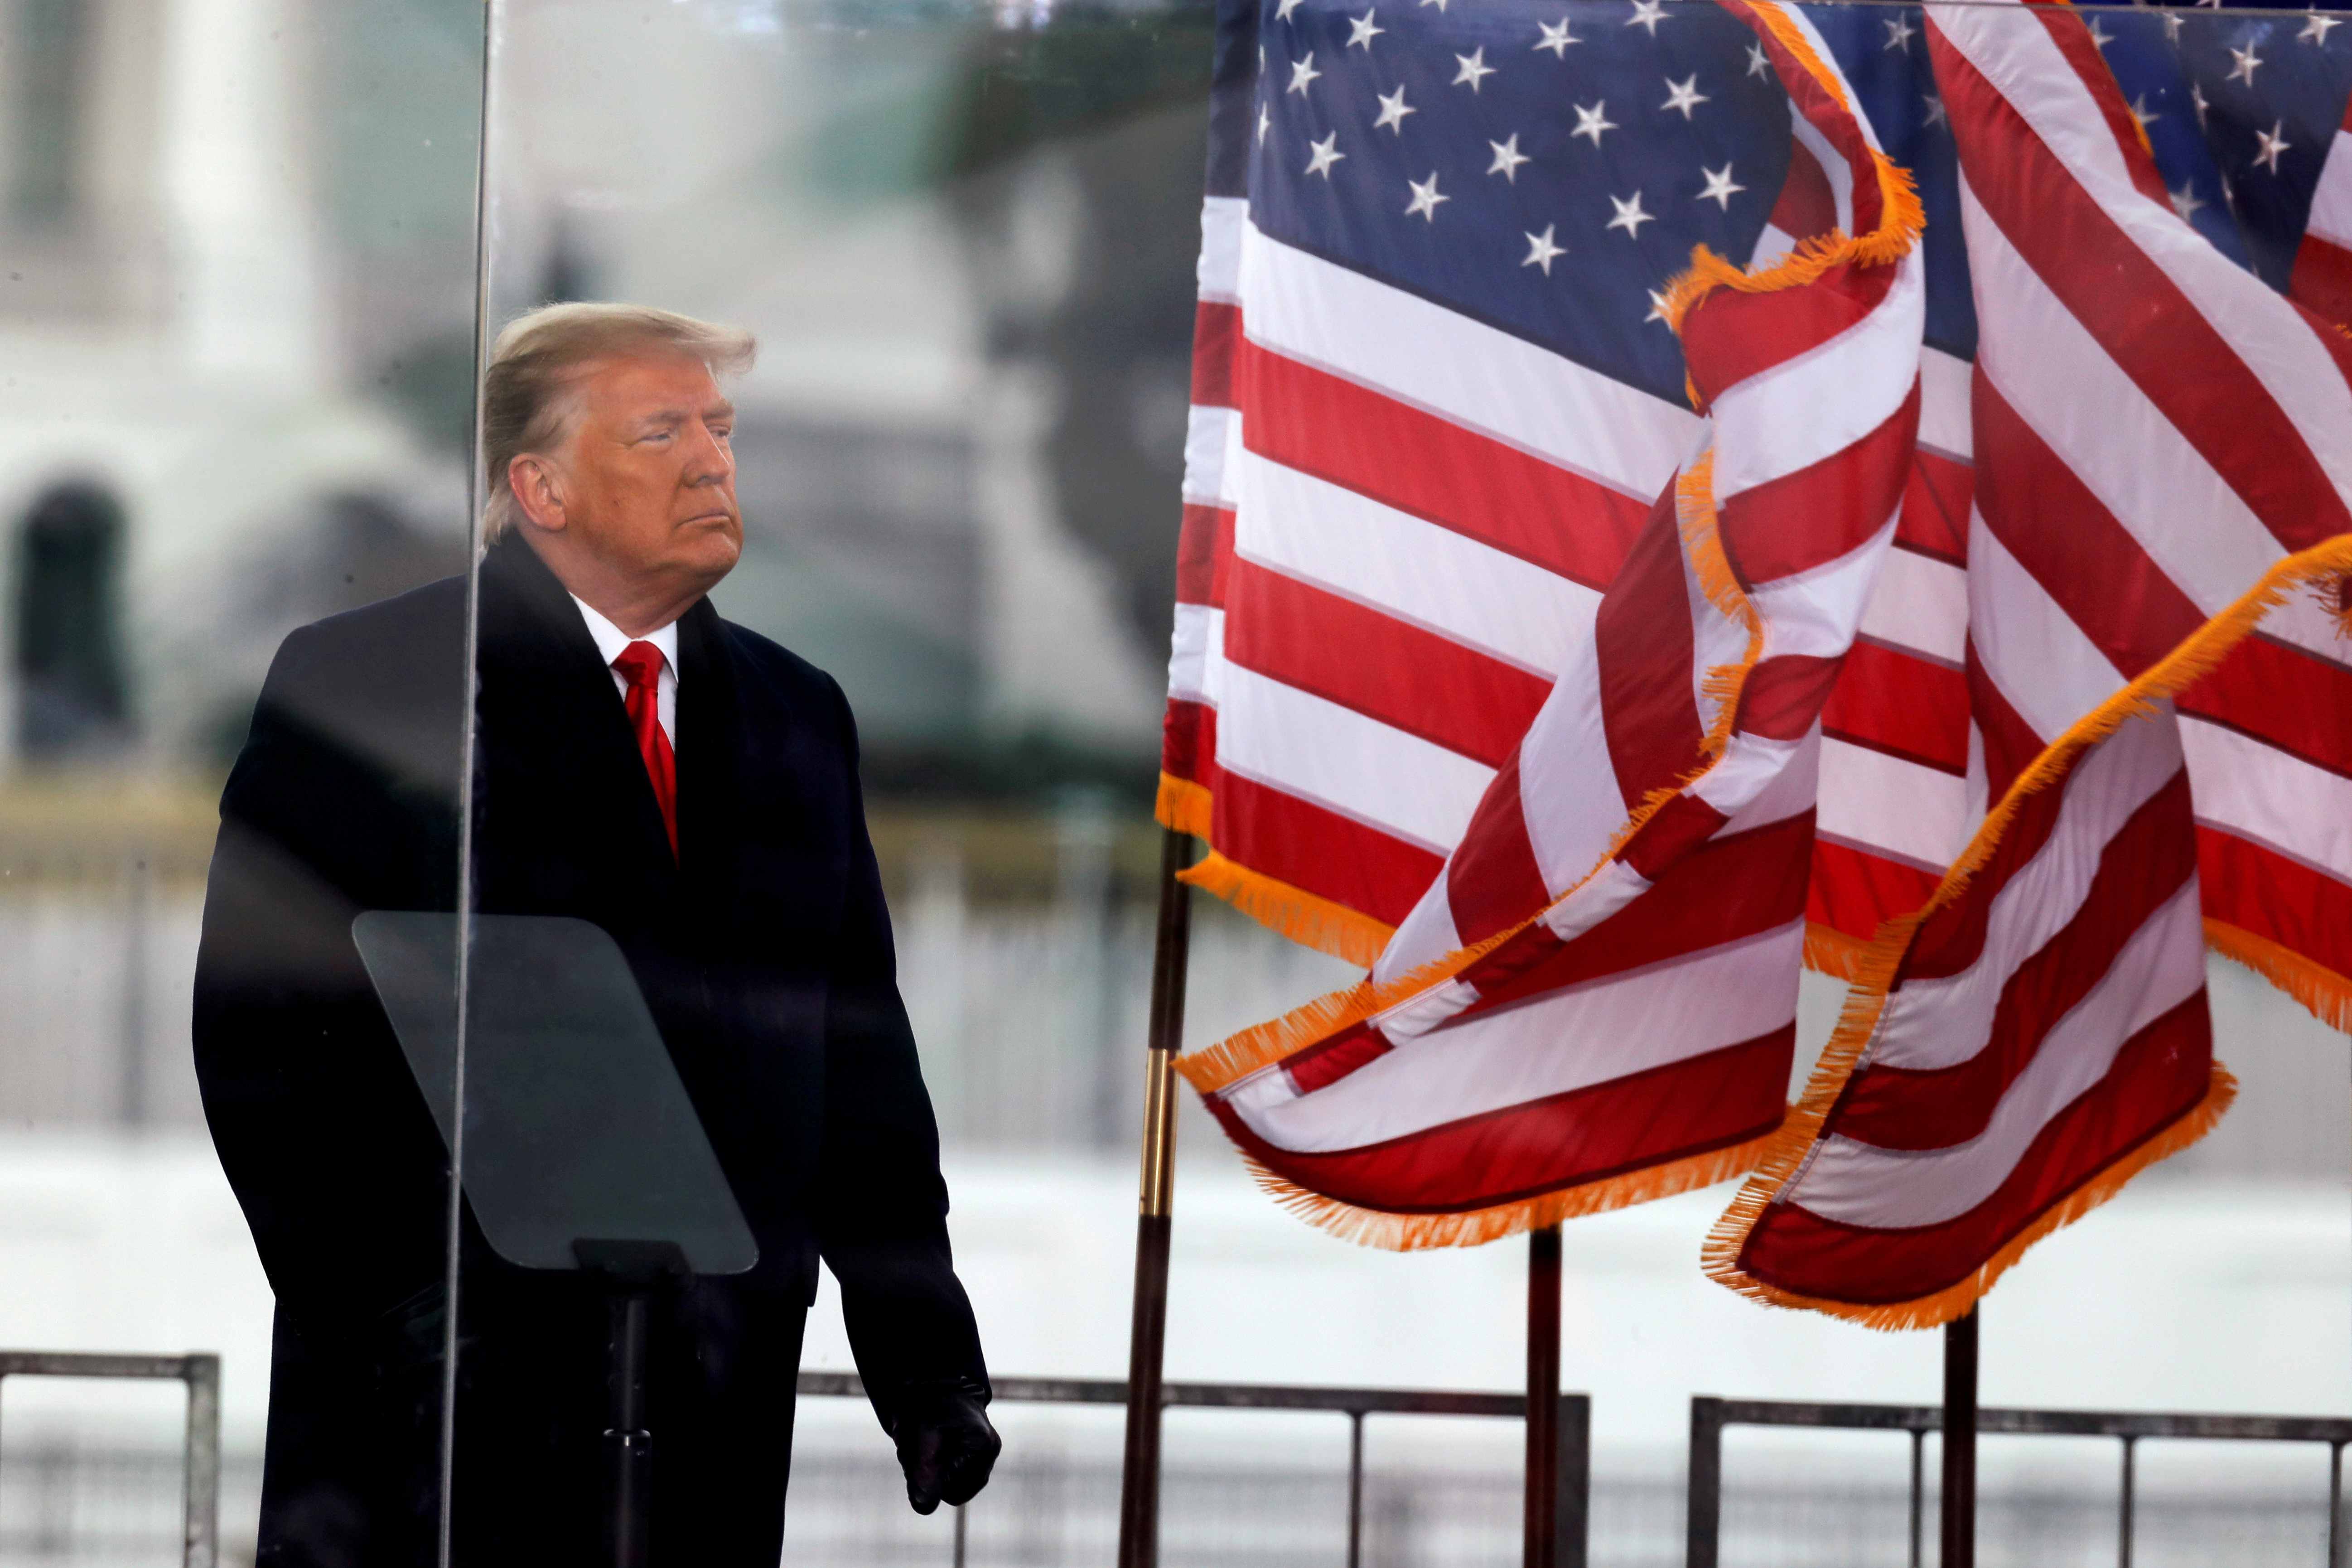 U.S. President Donald Trump looks on at the end of his speech during a rally to contest the certification of the 2020 U.S. presidential election results by the U.S. Congress, in Washington, U.S, January 6, 2021. REUTERS/Jim Bourg/File Photo